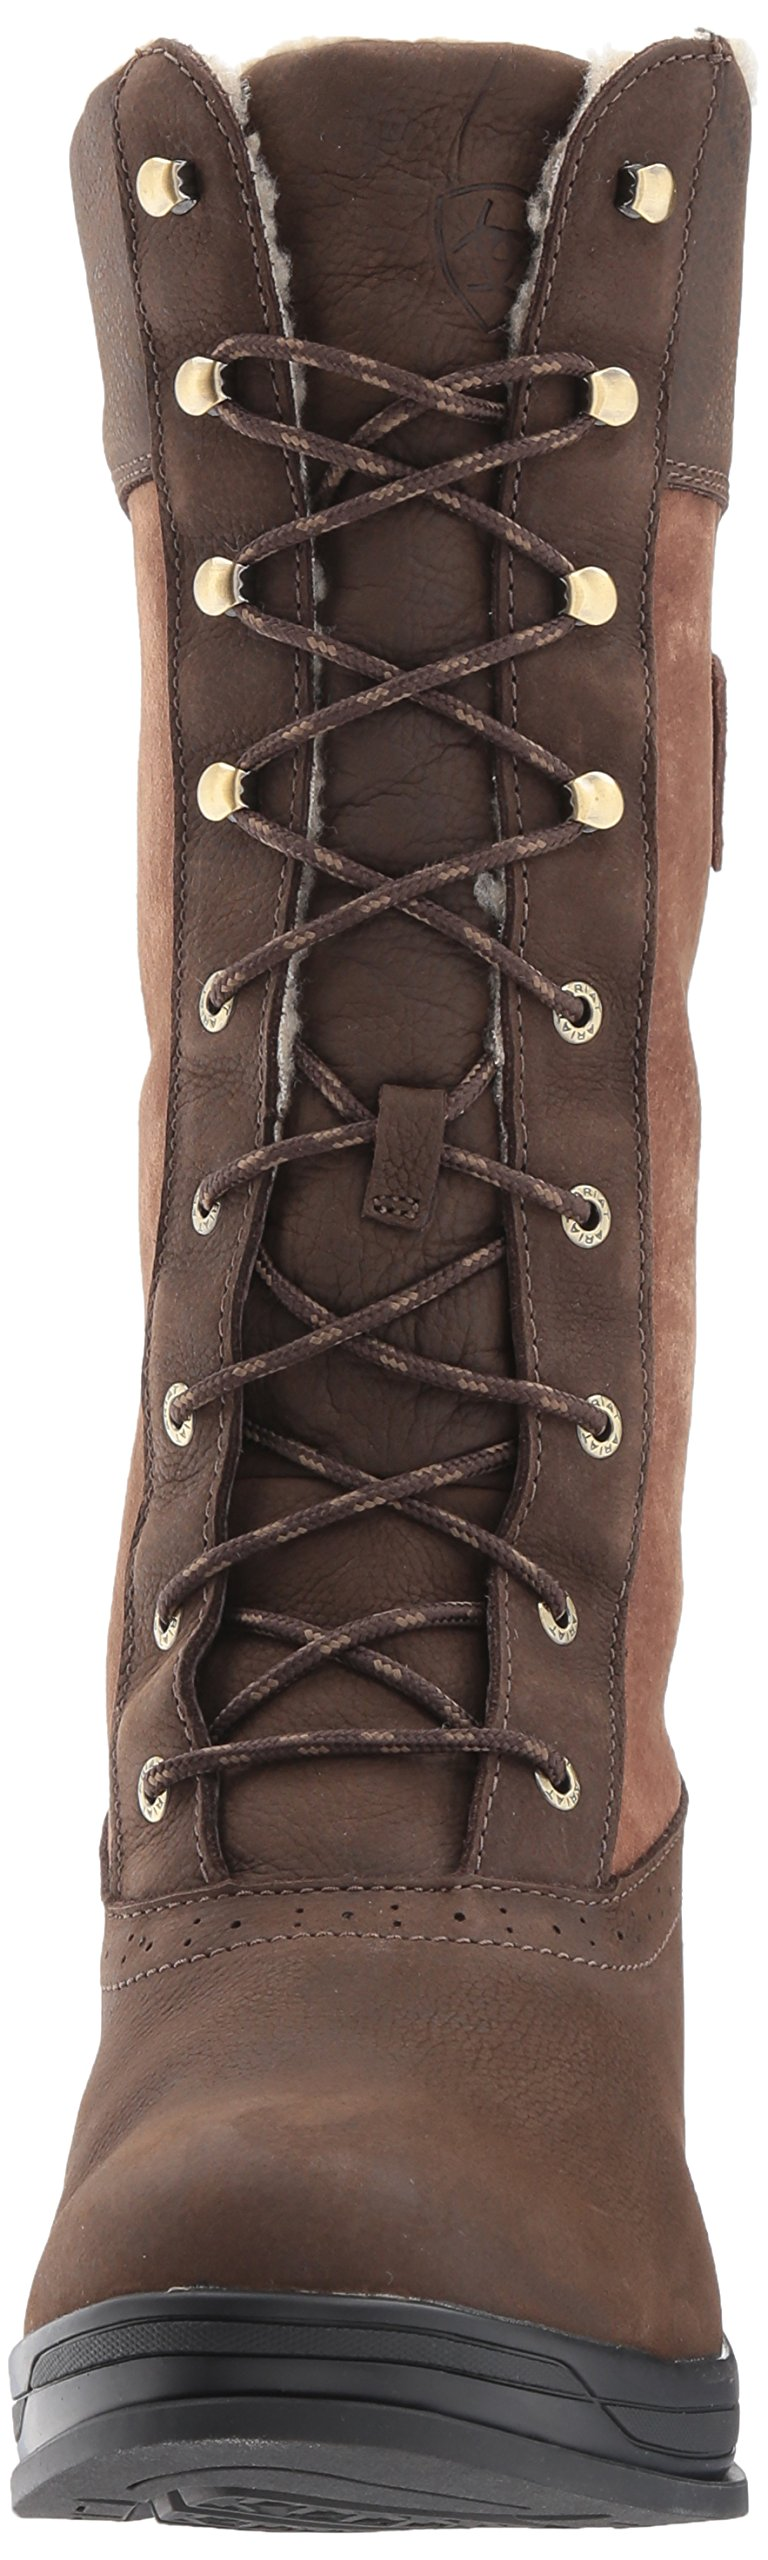 Ariat Women's Wythburn H2O Insulated Country Boot, Java, 7.5 B US by Ariat (Image #4)